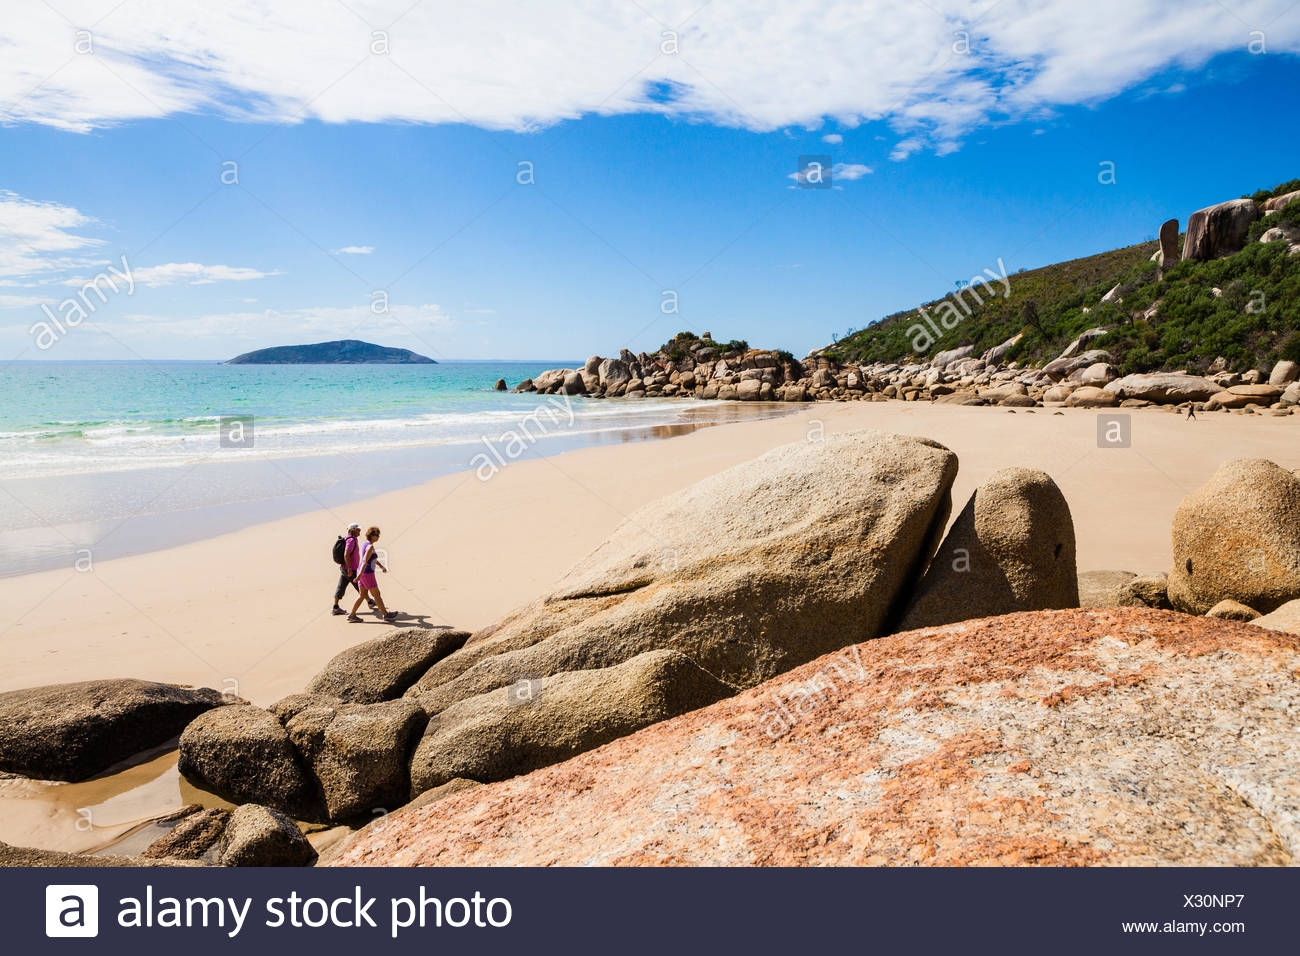 Two persons walking at beach of Fairy Cove, Wilsons Promontory, Victoria, Australia - Stock Image